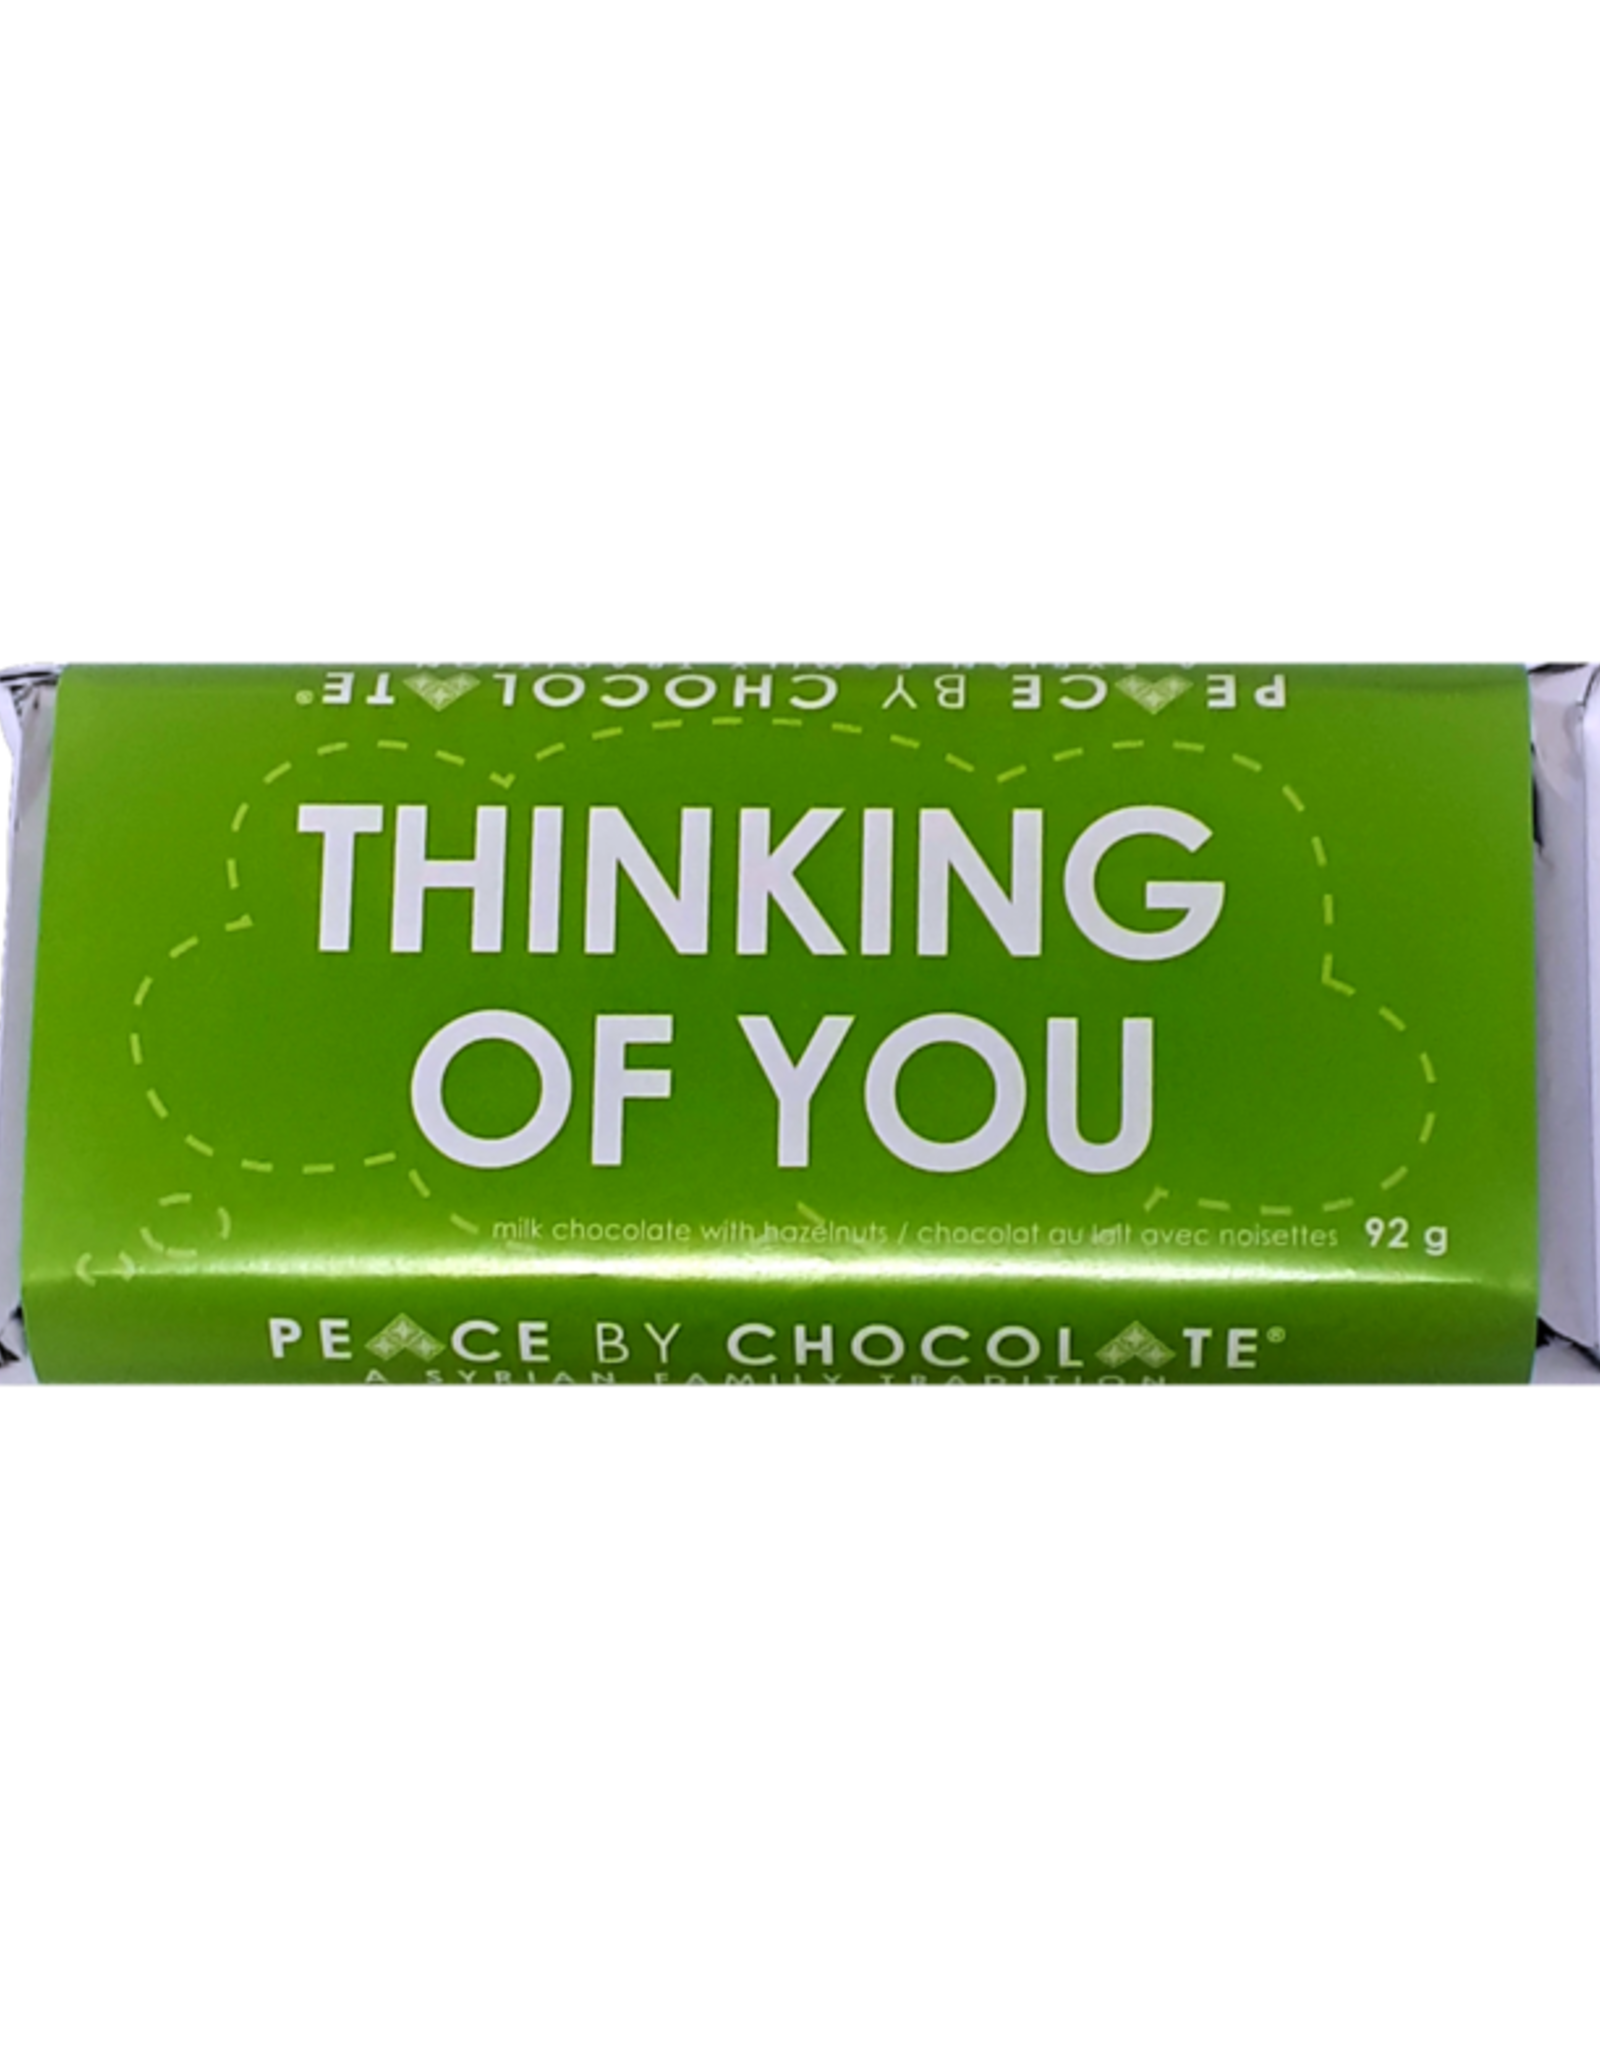 Peace By Chocolate Milk Chocolate Thinking of You Bar